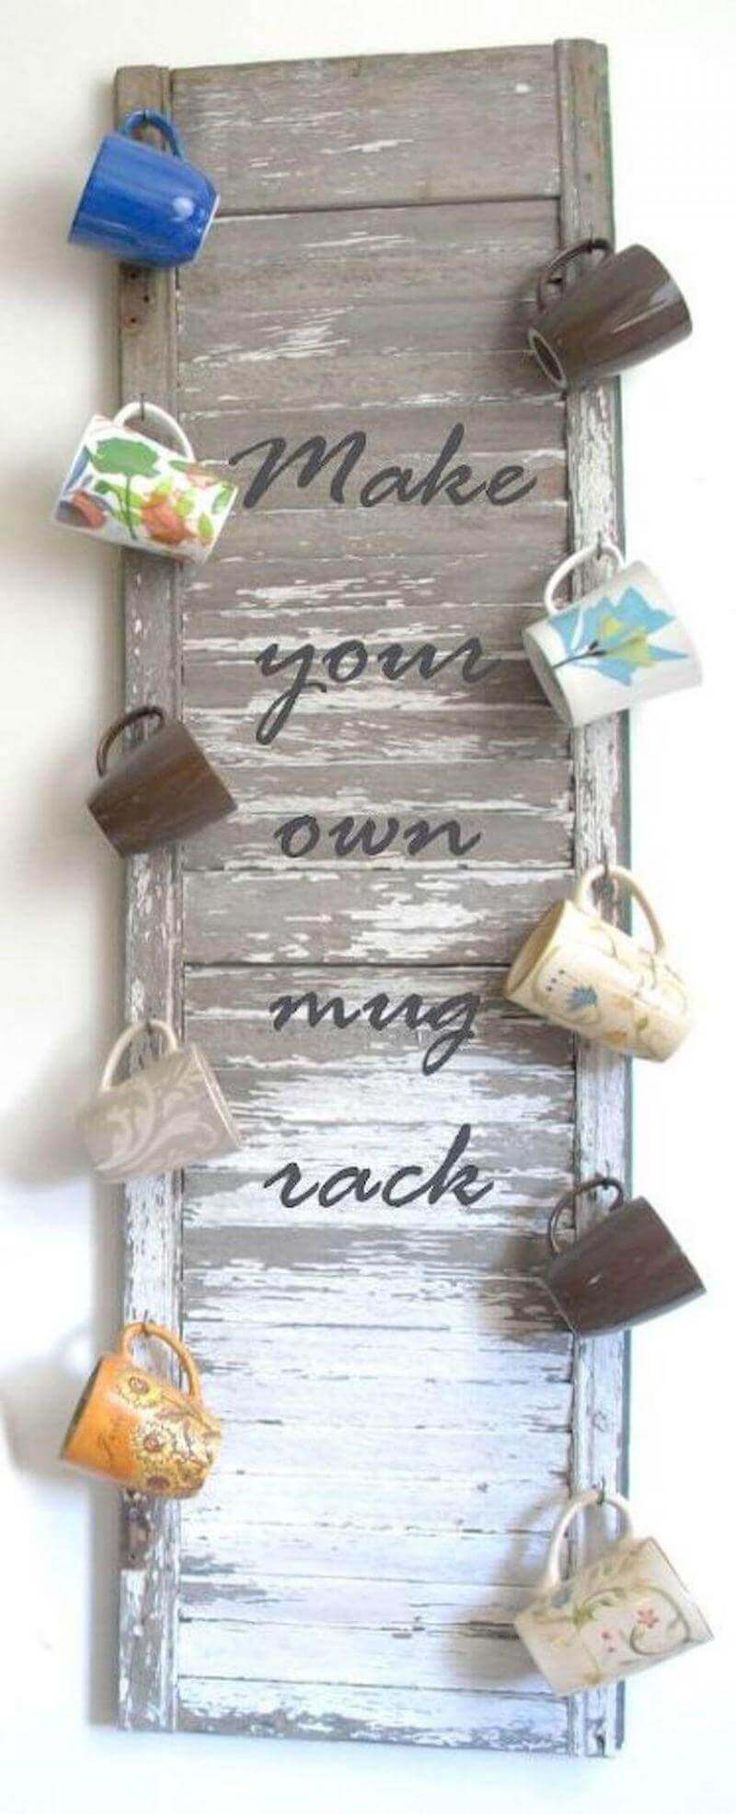 Upcycling projects using old window shutters- Coffee lover's DIY shutter with mug holders